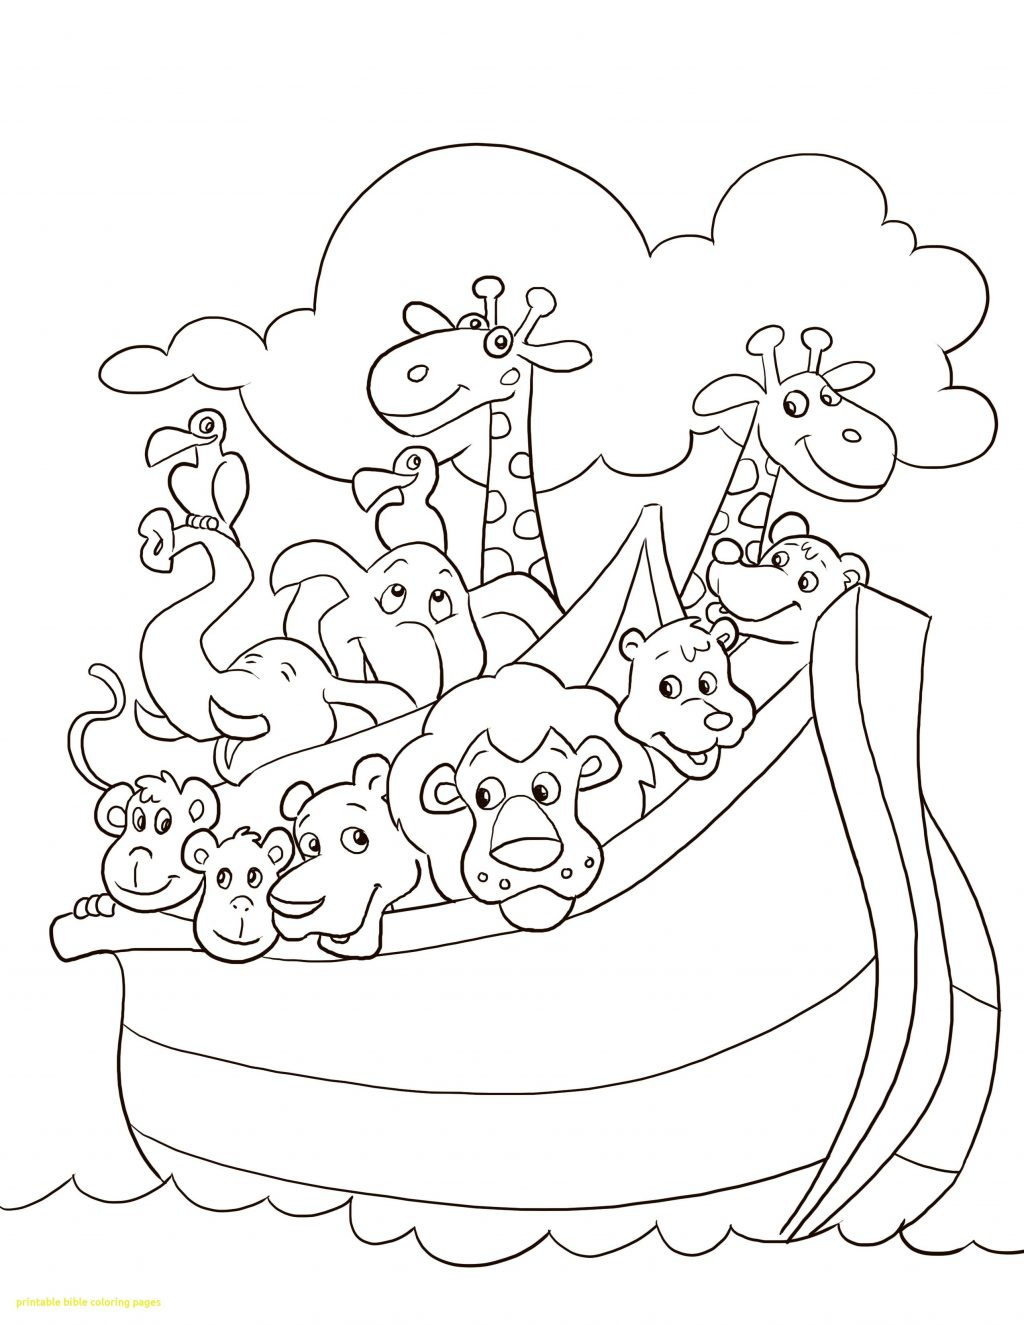 Coloring Pages ~ Bible Characters Colorings Printable Of Free With - Free Printable Bible Characters Coloring Pages